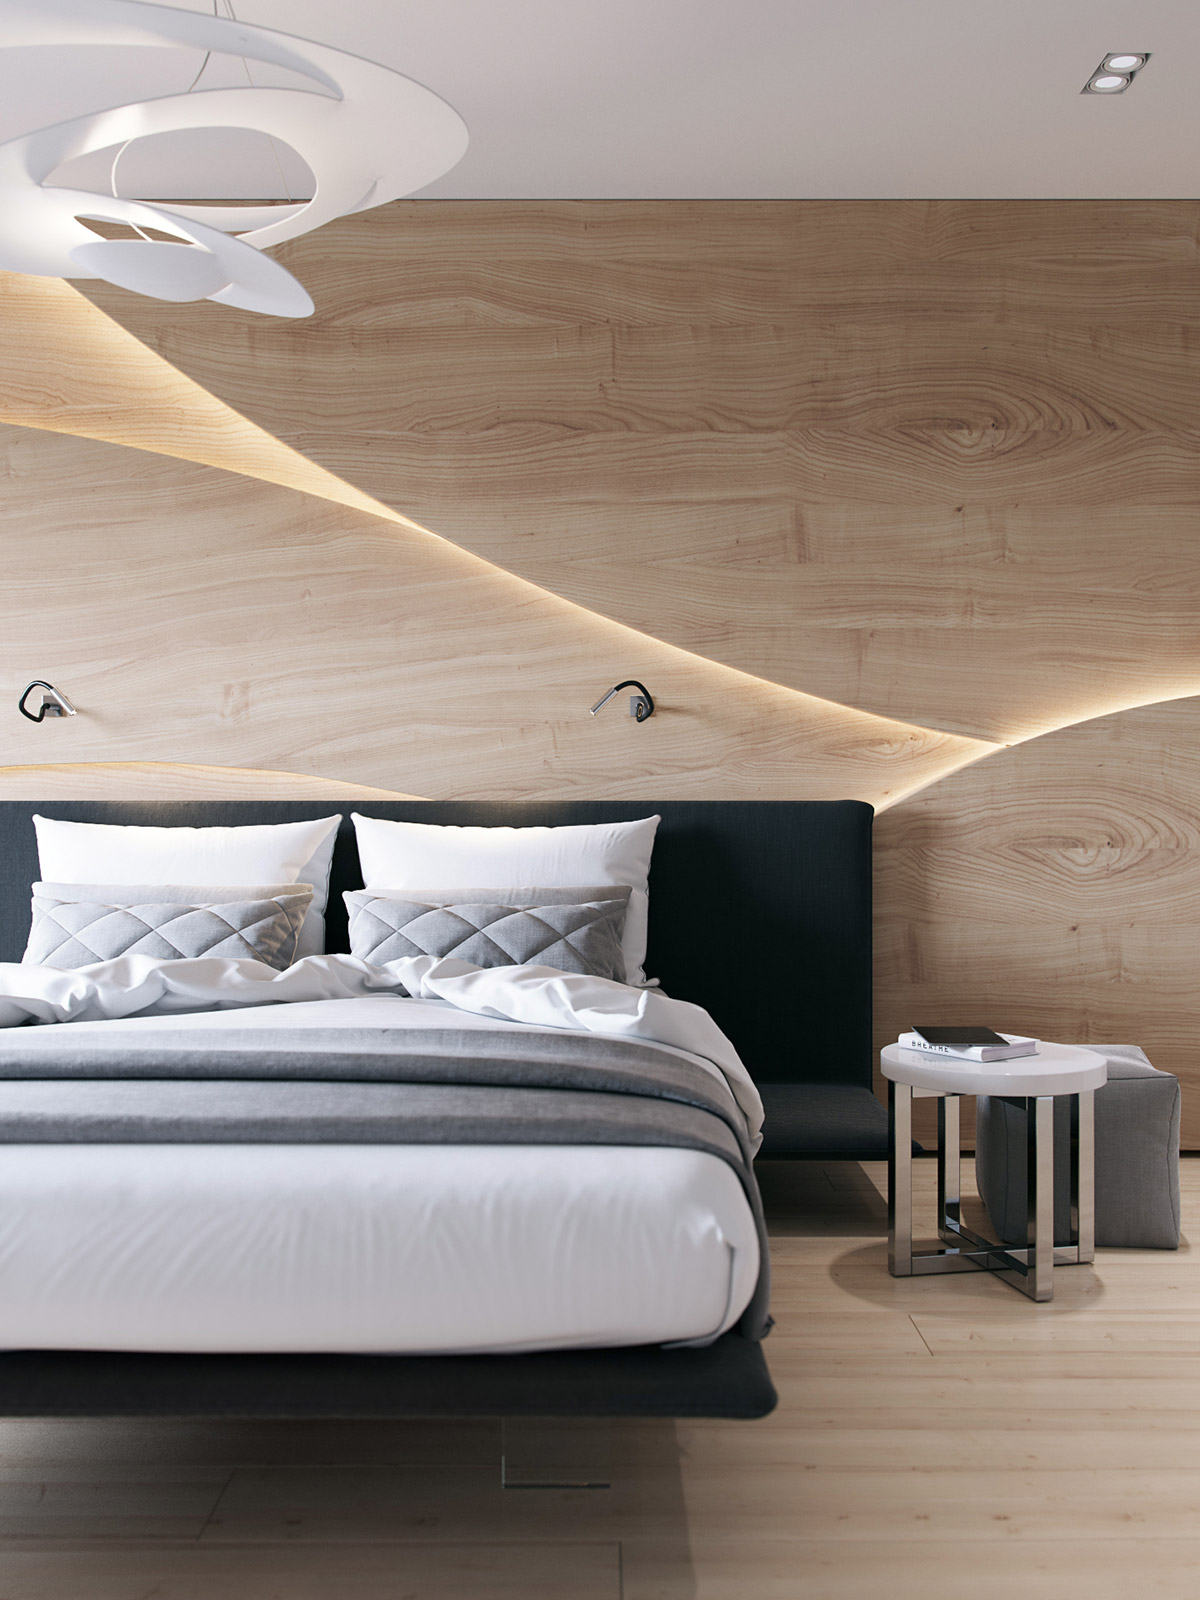 Wooden wall designs 30 striking bedrooms that use the wood finish artfully - Design on wooden ...